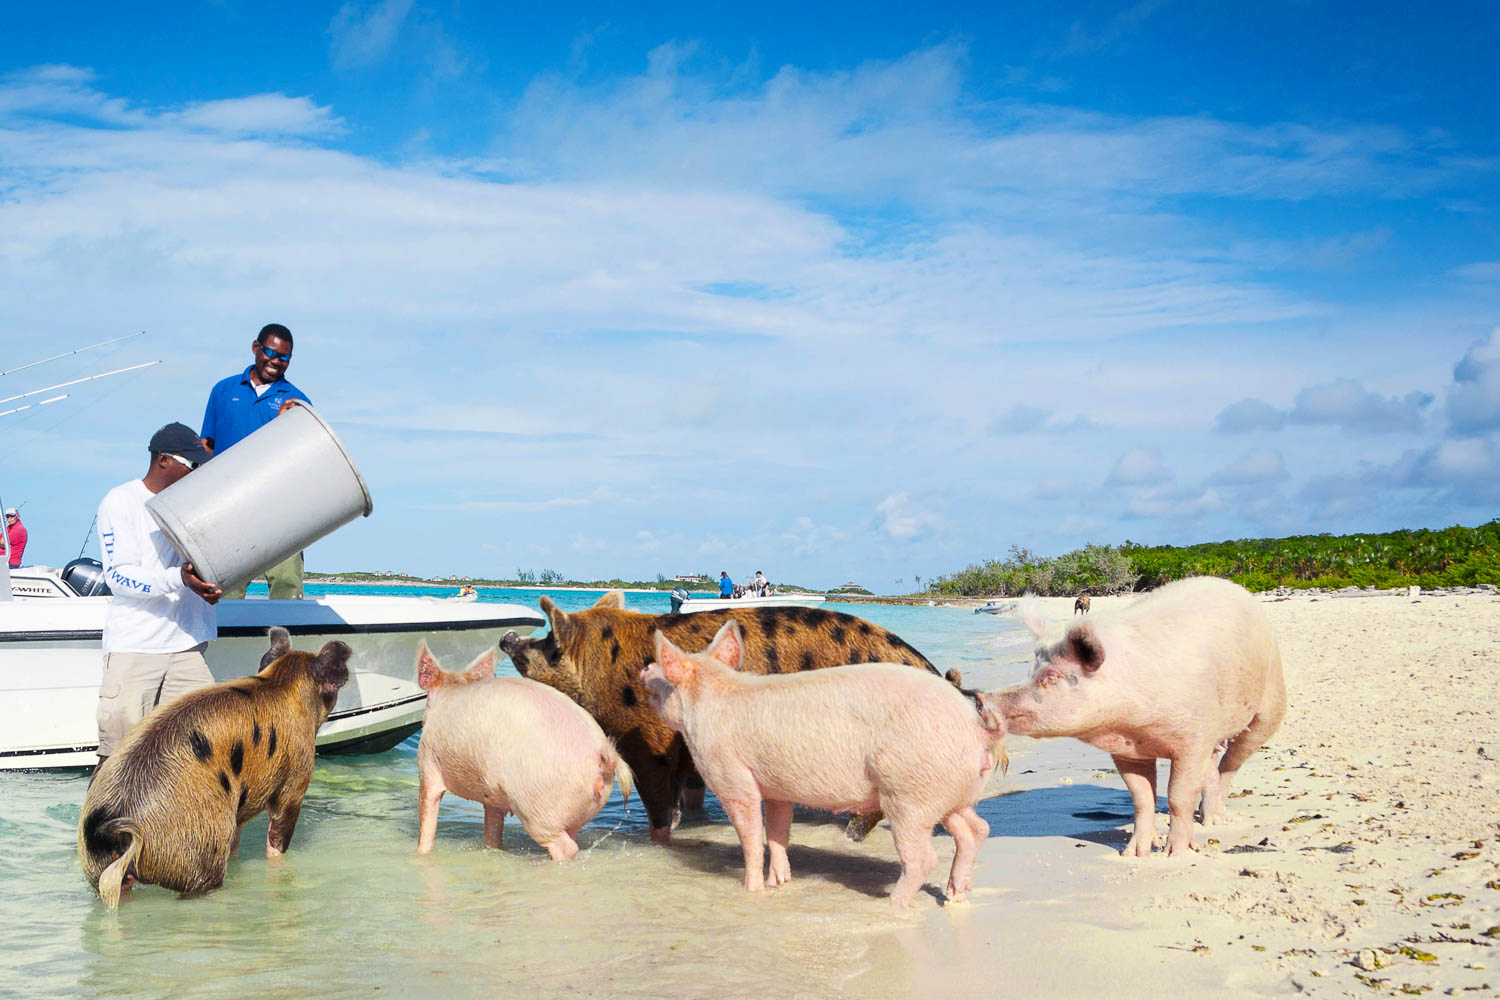 About 25 Exuma pigs live on Big Major Cay at Pig Beach. See them on your Pig Island tour in the Exuma Cays. A Pig Beach Bahamas tour is very popular.